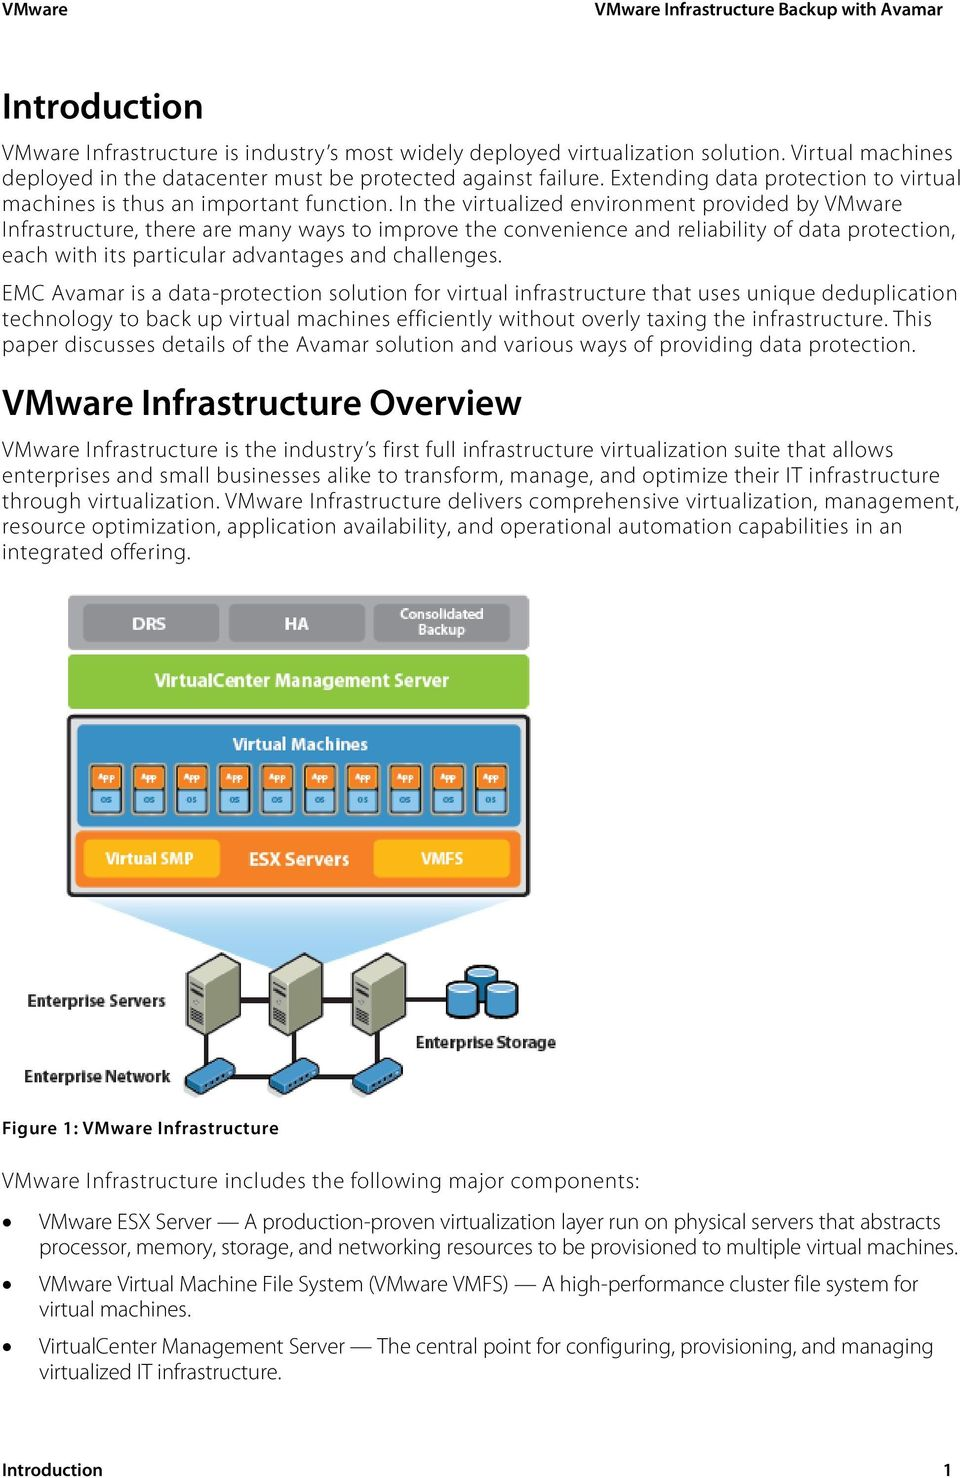 In the virtualized environment provided by VMware Infrastructure, there are many ways to improve the convenience and reliability of data protection, each with its particular advantages and challenges.